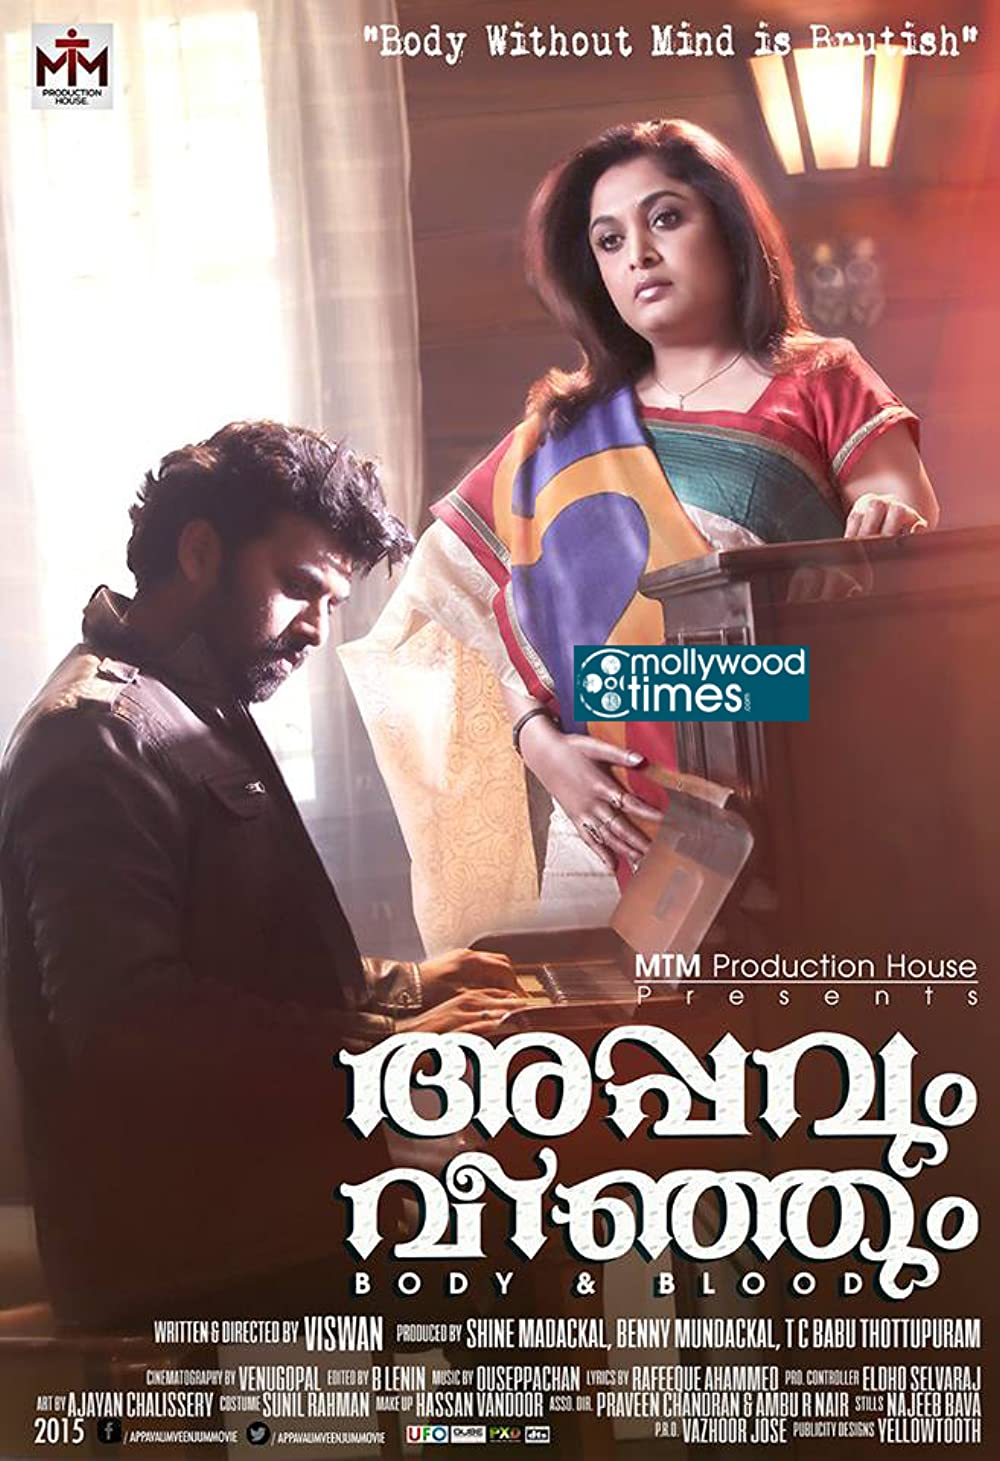 Jism Aur Khoon (Appavum Veenjum) 2021 Hindi Dubbed 300MB HDRip Download